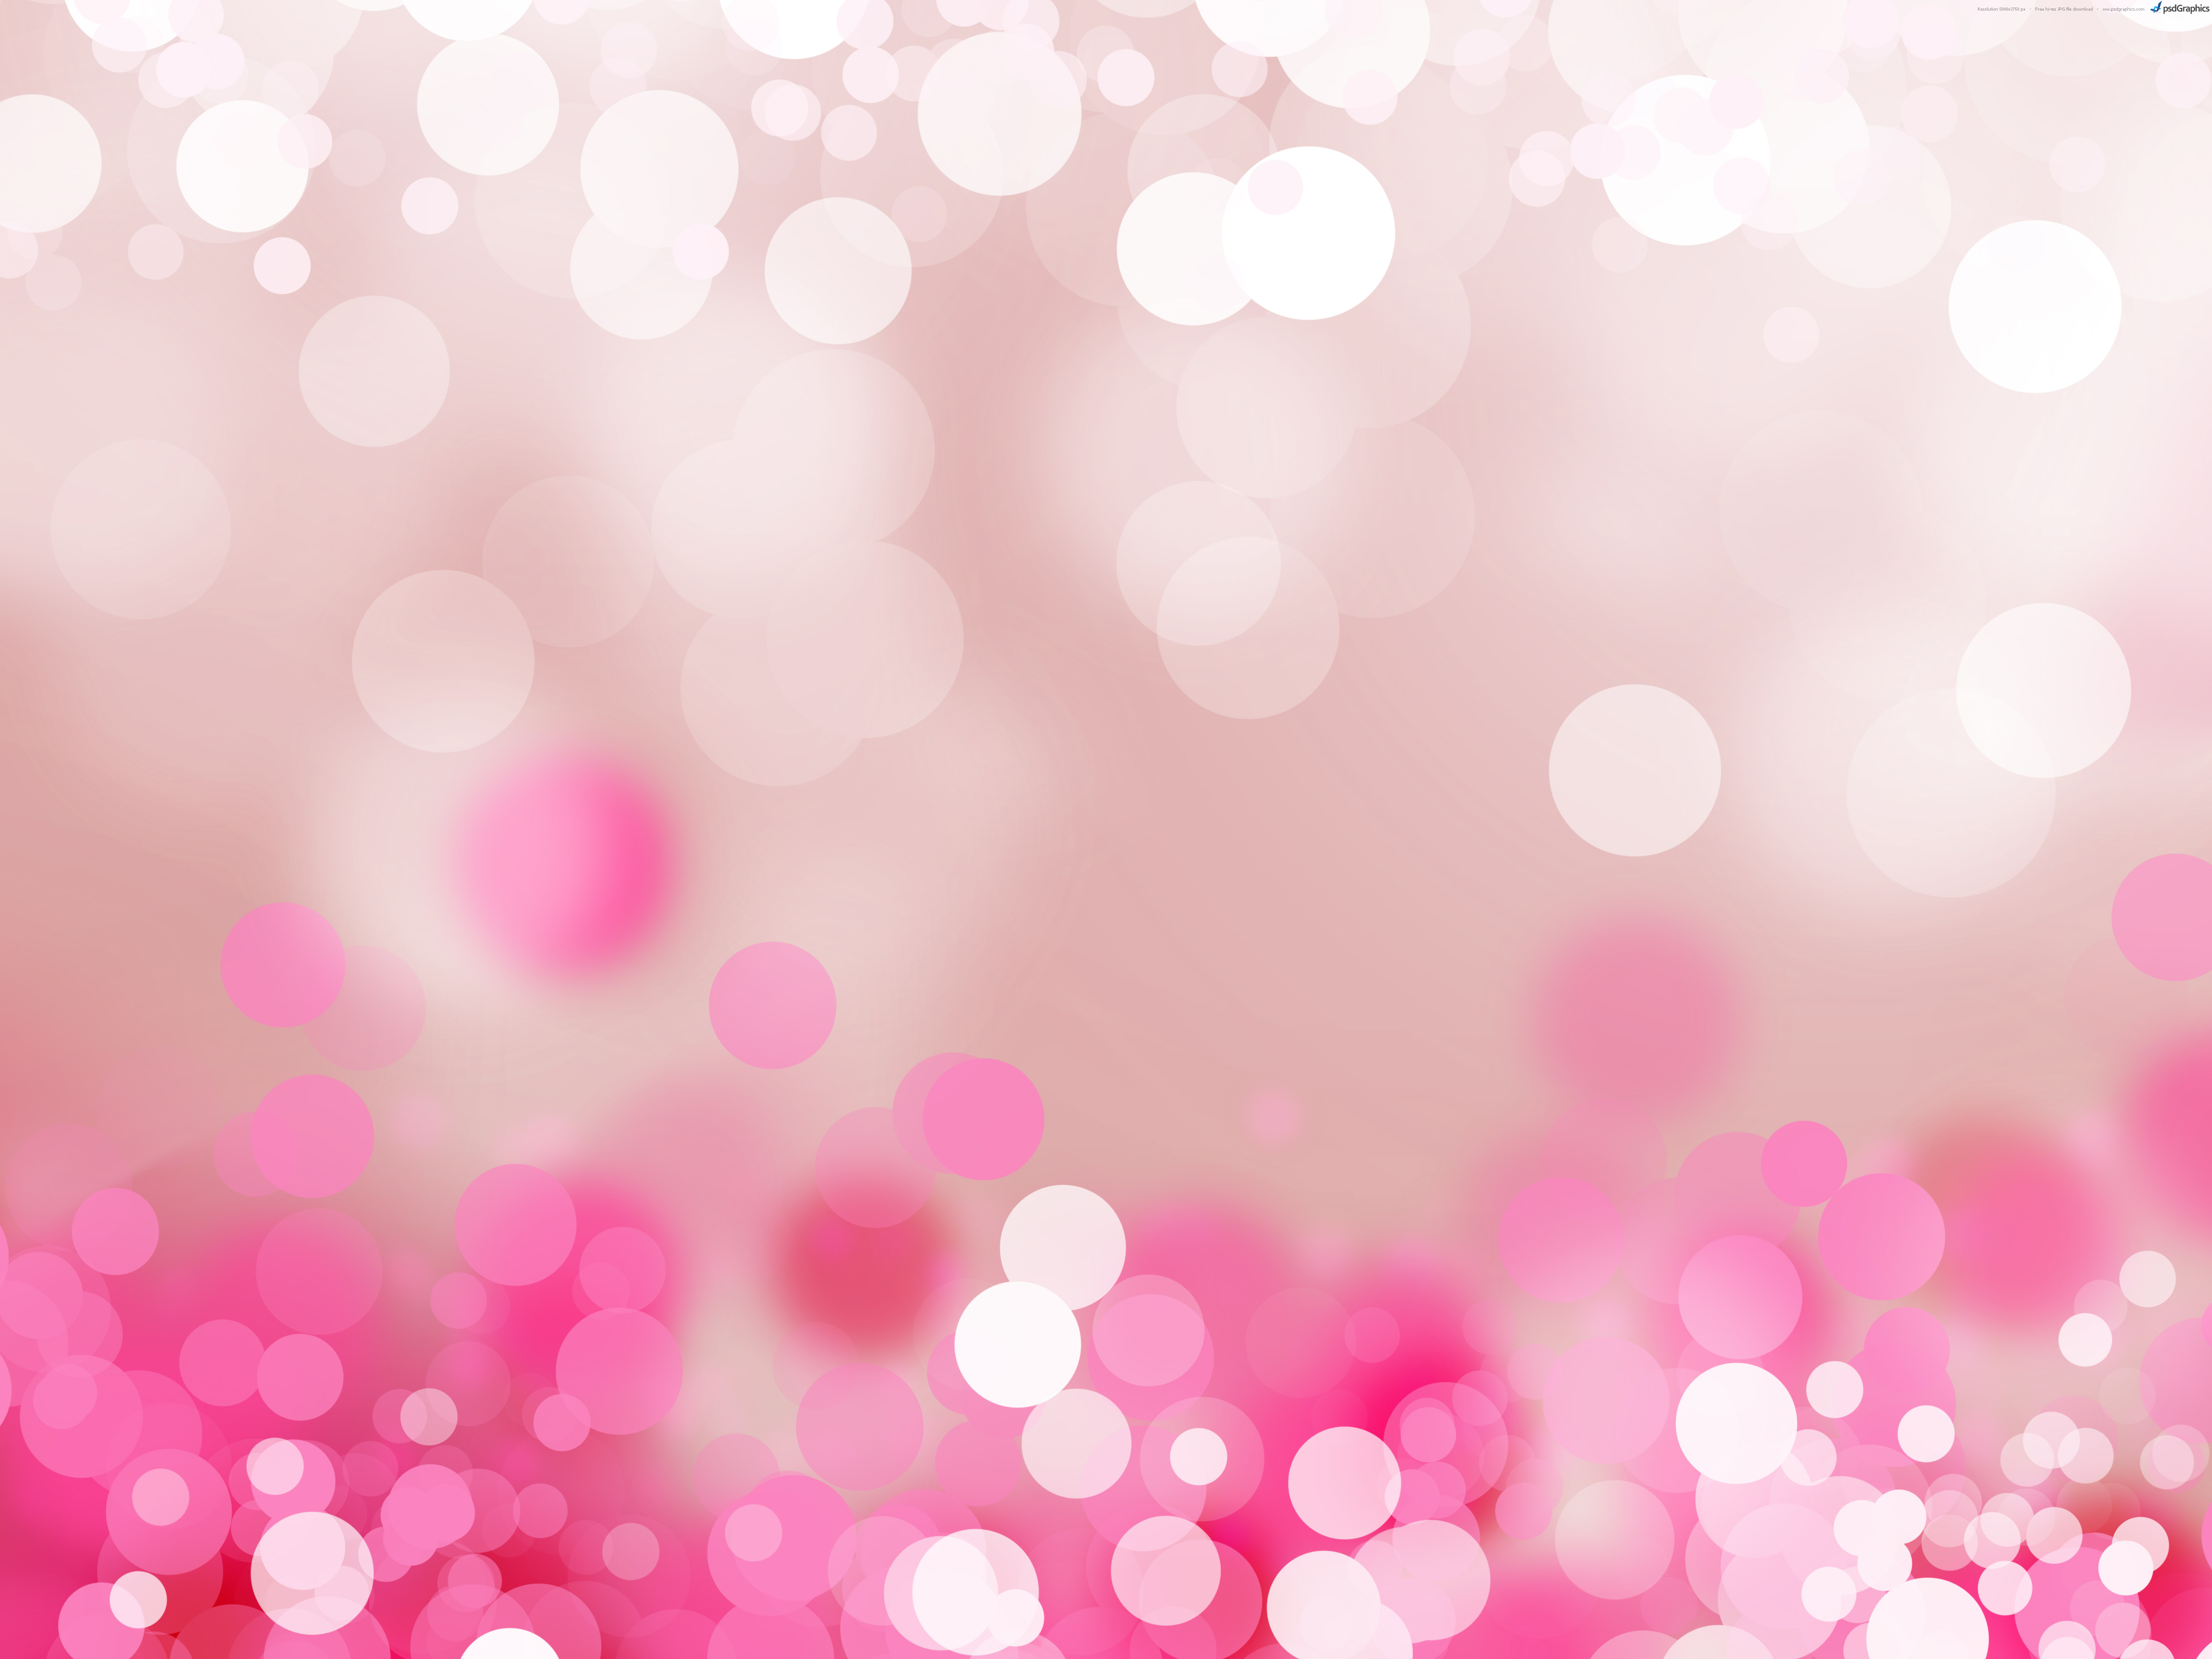 Pink Background Wallpapers - WallpaperSafari